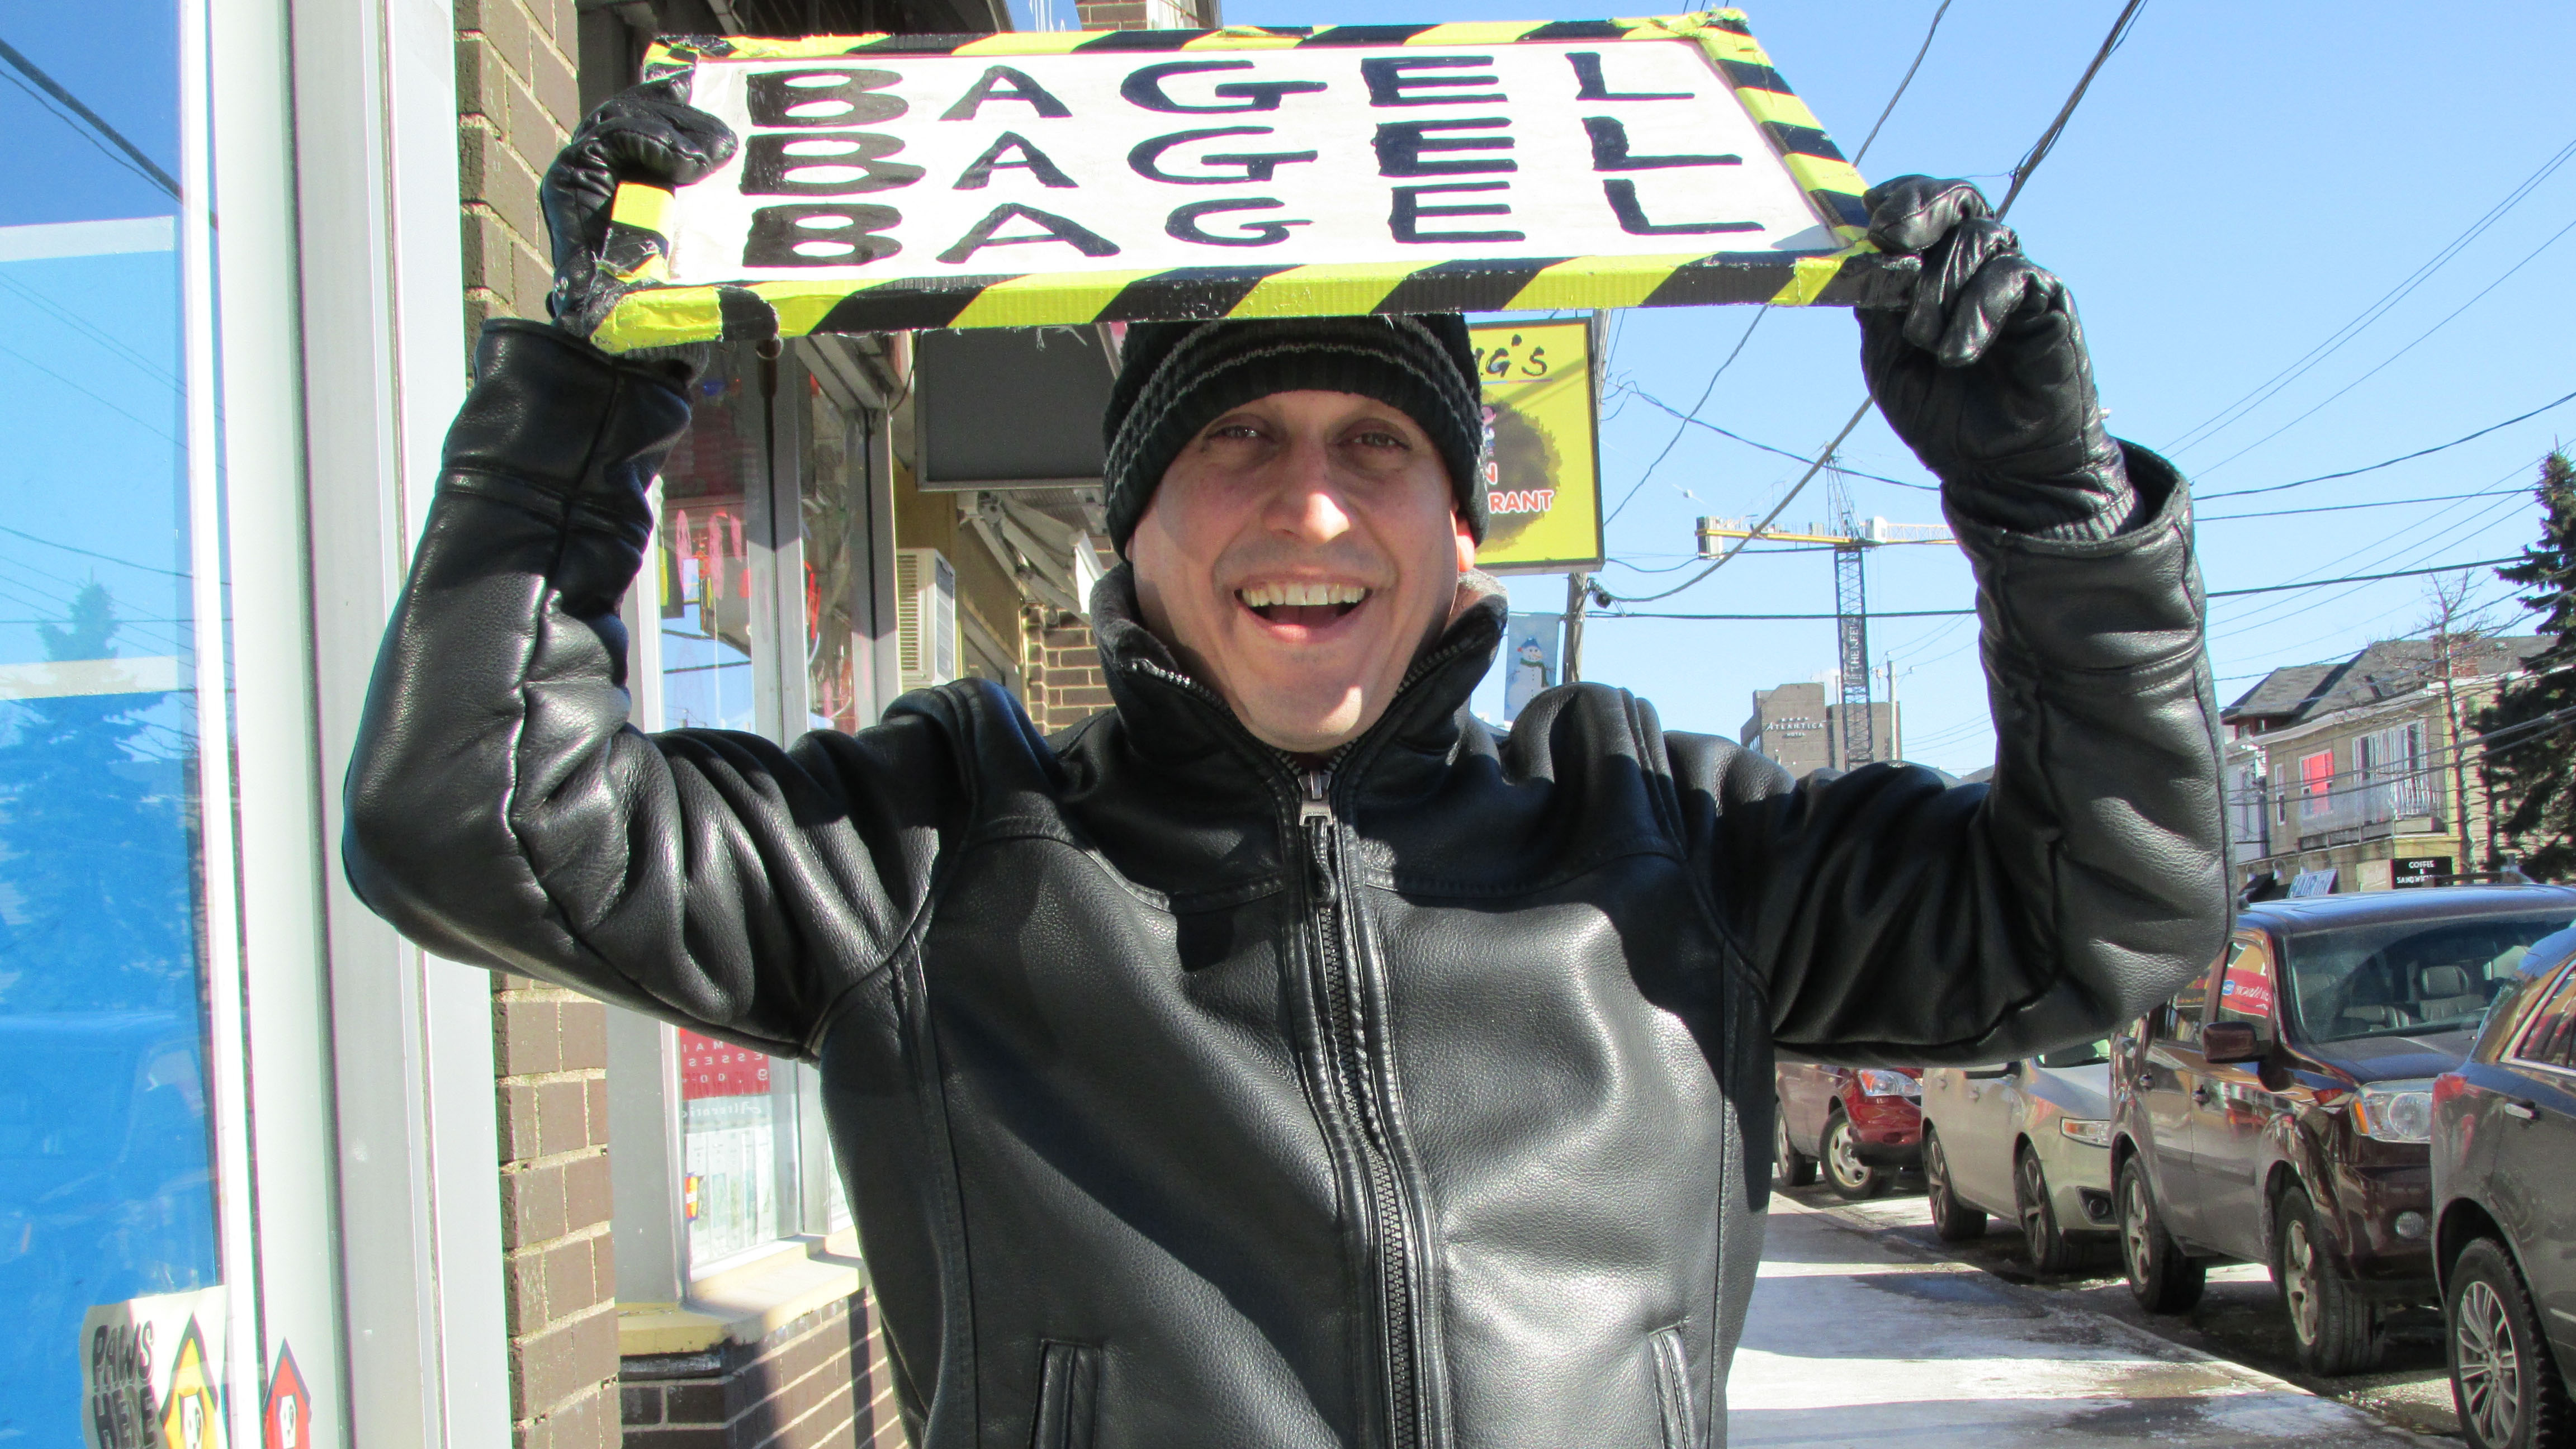 Gerry Lonergan, owner of the East Coast Bakey, spins his sign and ushers pedestrians inside for some bagels.